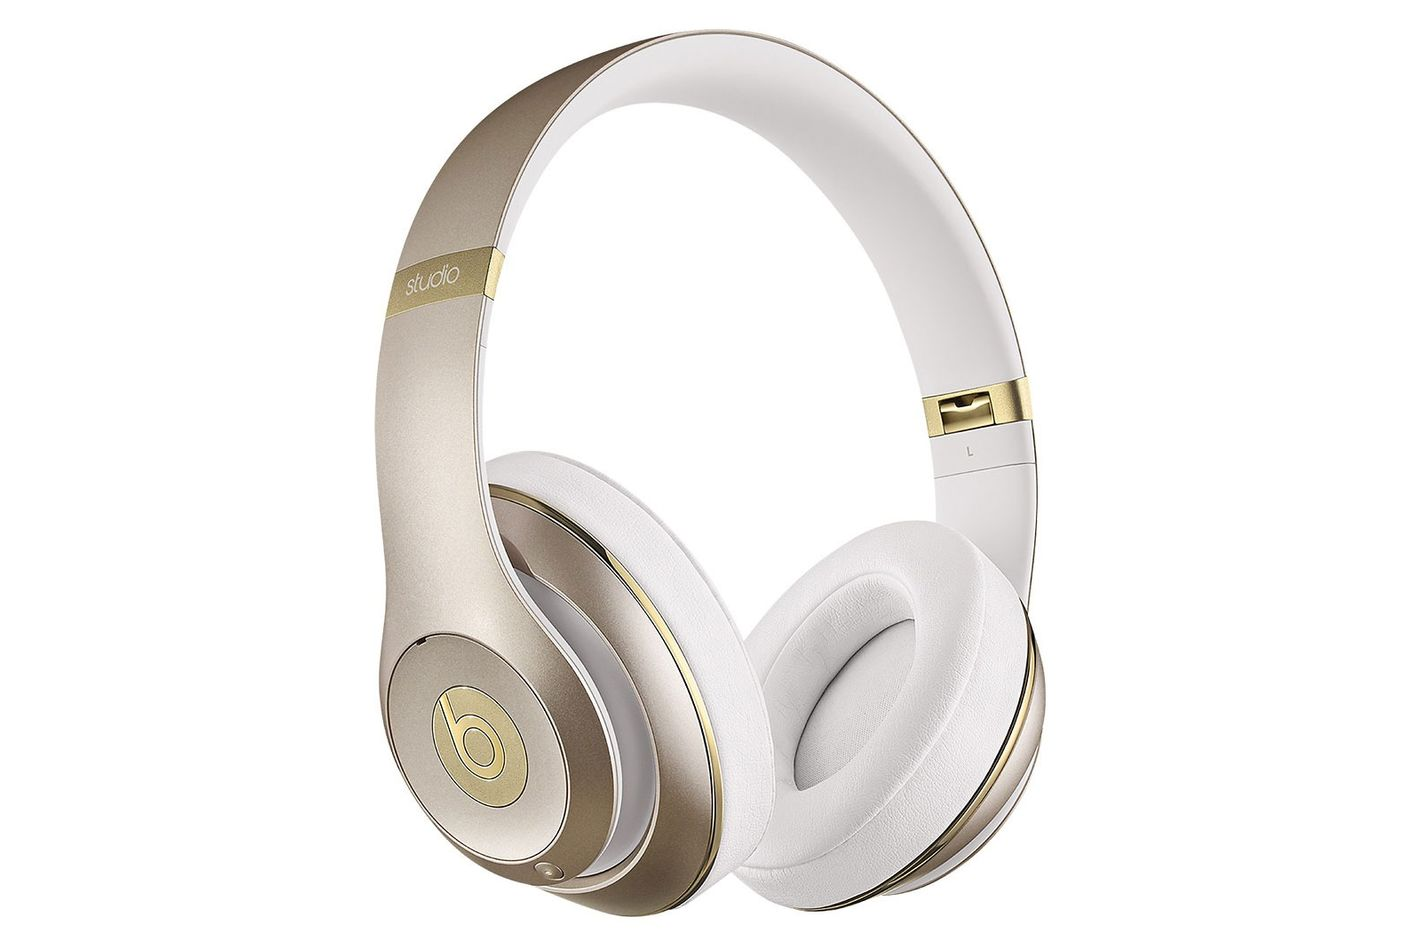 Beats by Dr. Dre Over-the-Ear Headphones in Gold